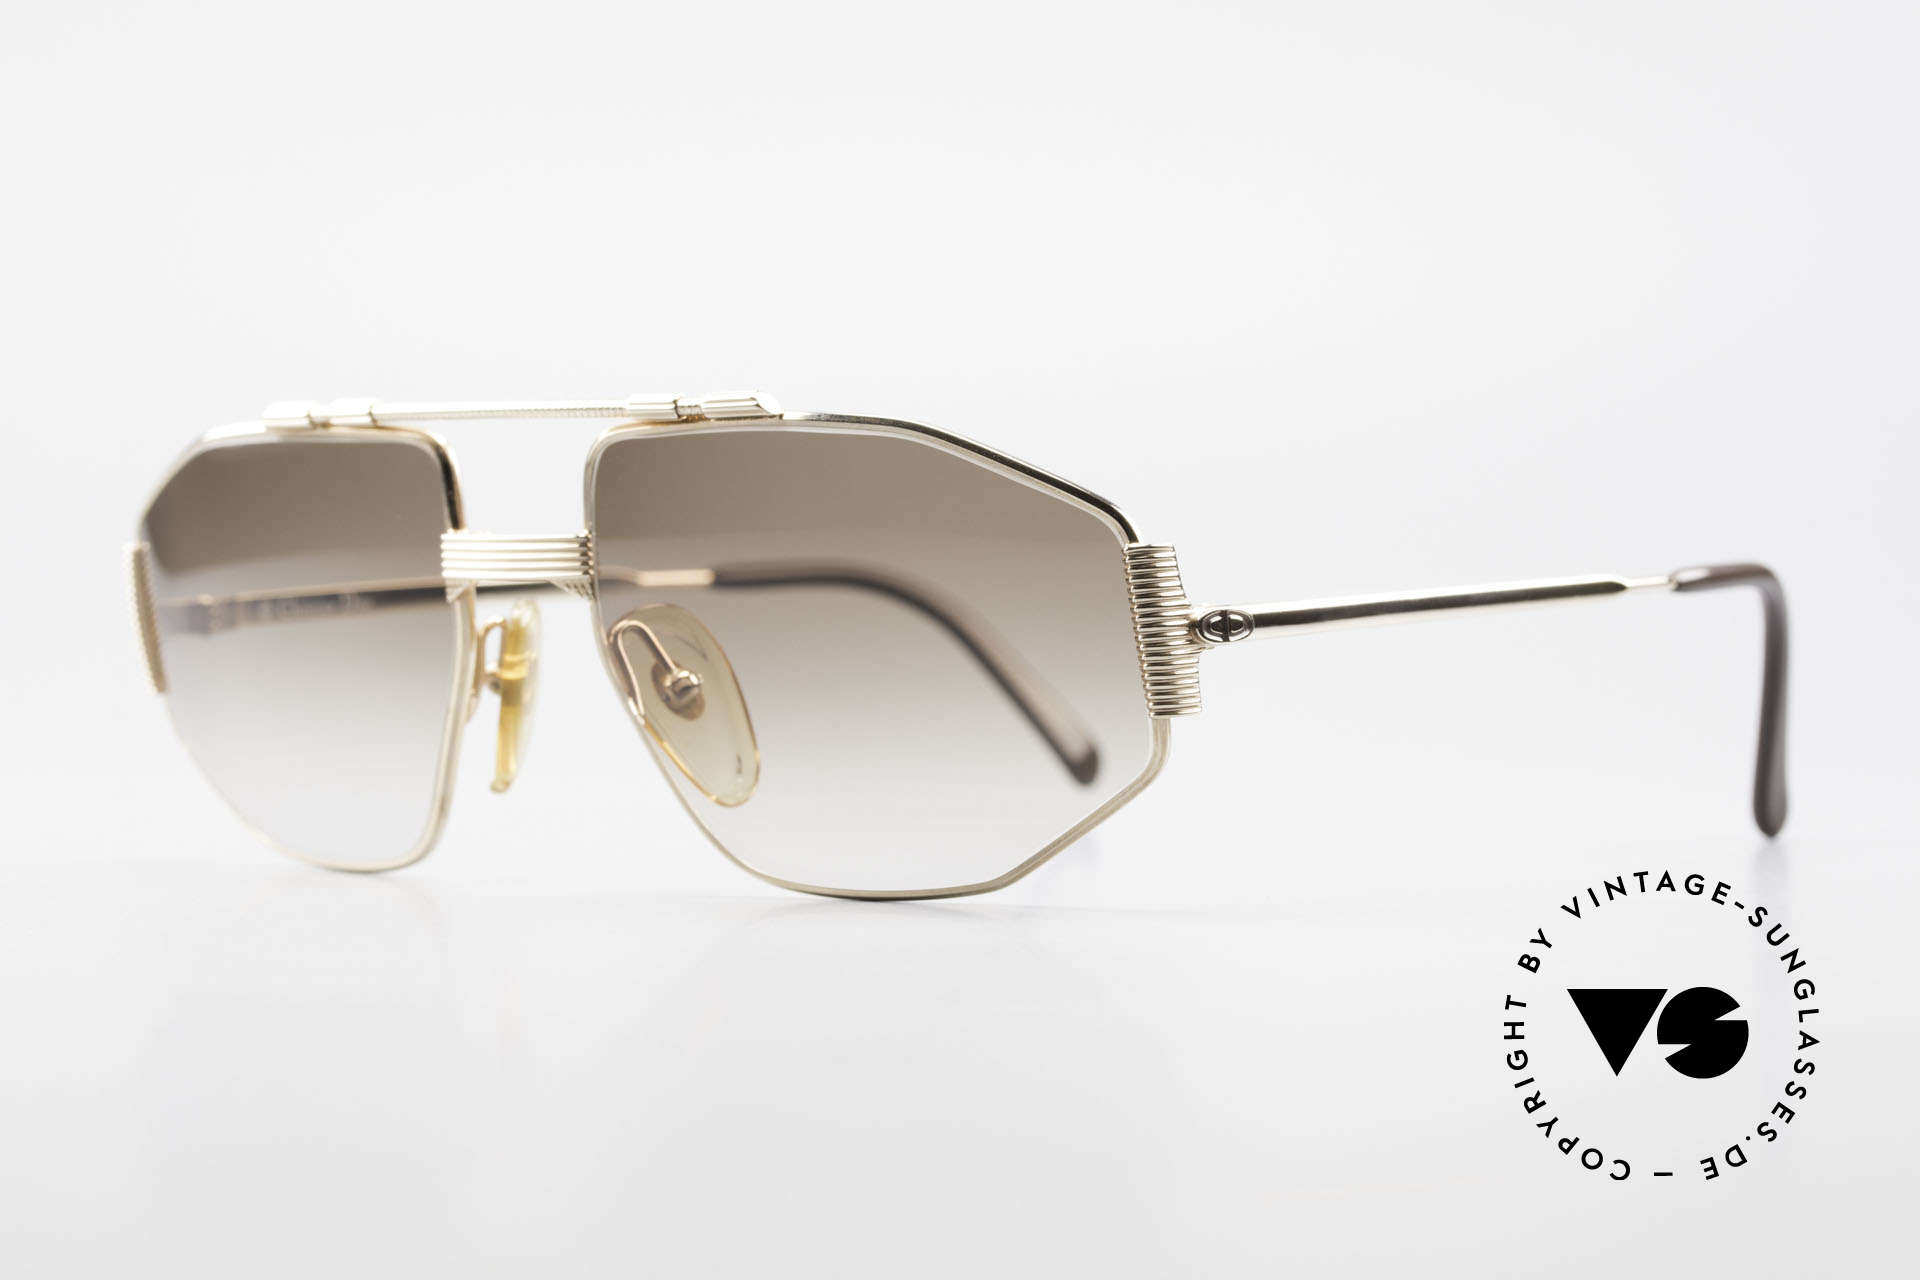 Christian Dior 2516 80's Gold Plated Sunglasses, 1st class wearing comfort and HARD GOLD-PLATED, Made for Men